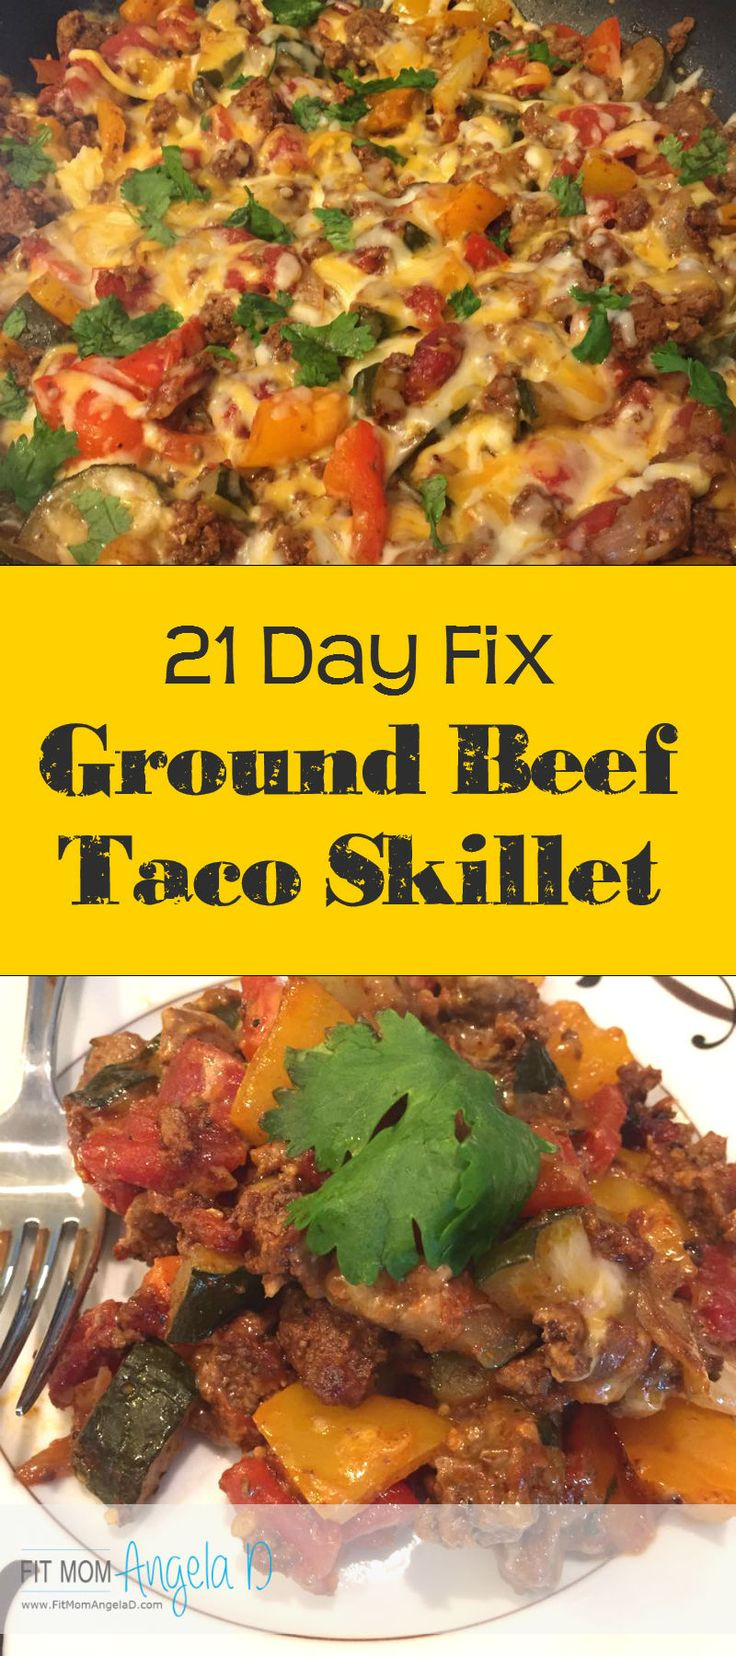 Healthy Ground Beef Skillet Recipes  21 Day Fix Ground Beef Taco Skillet